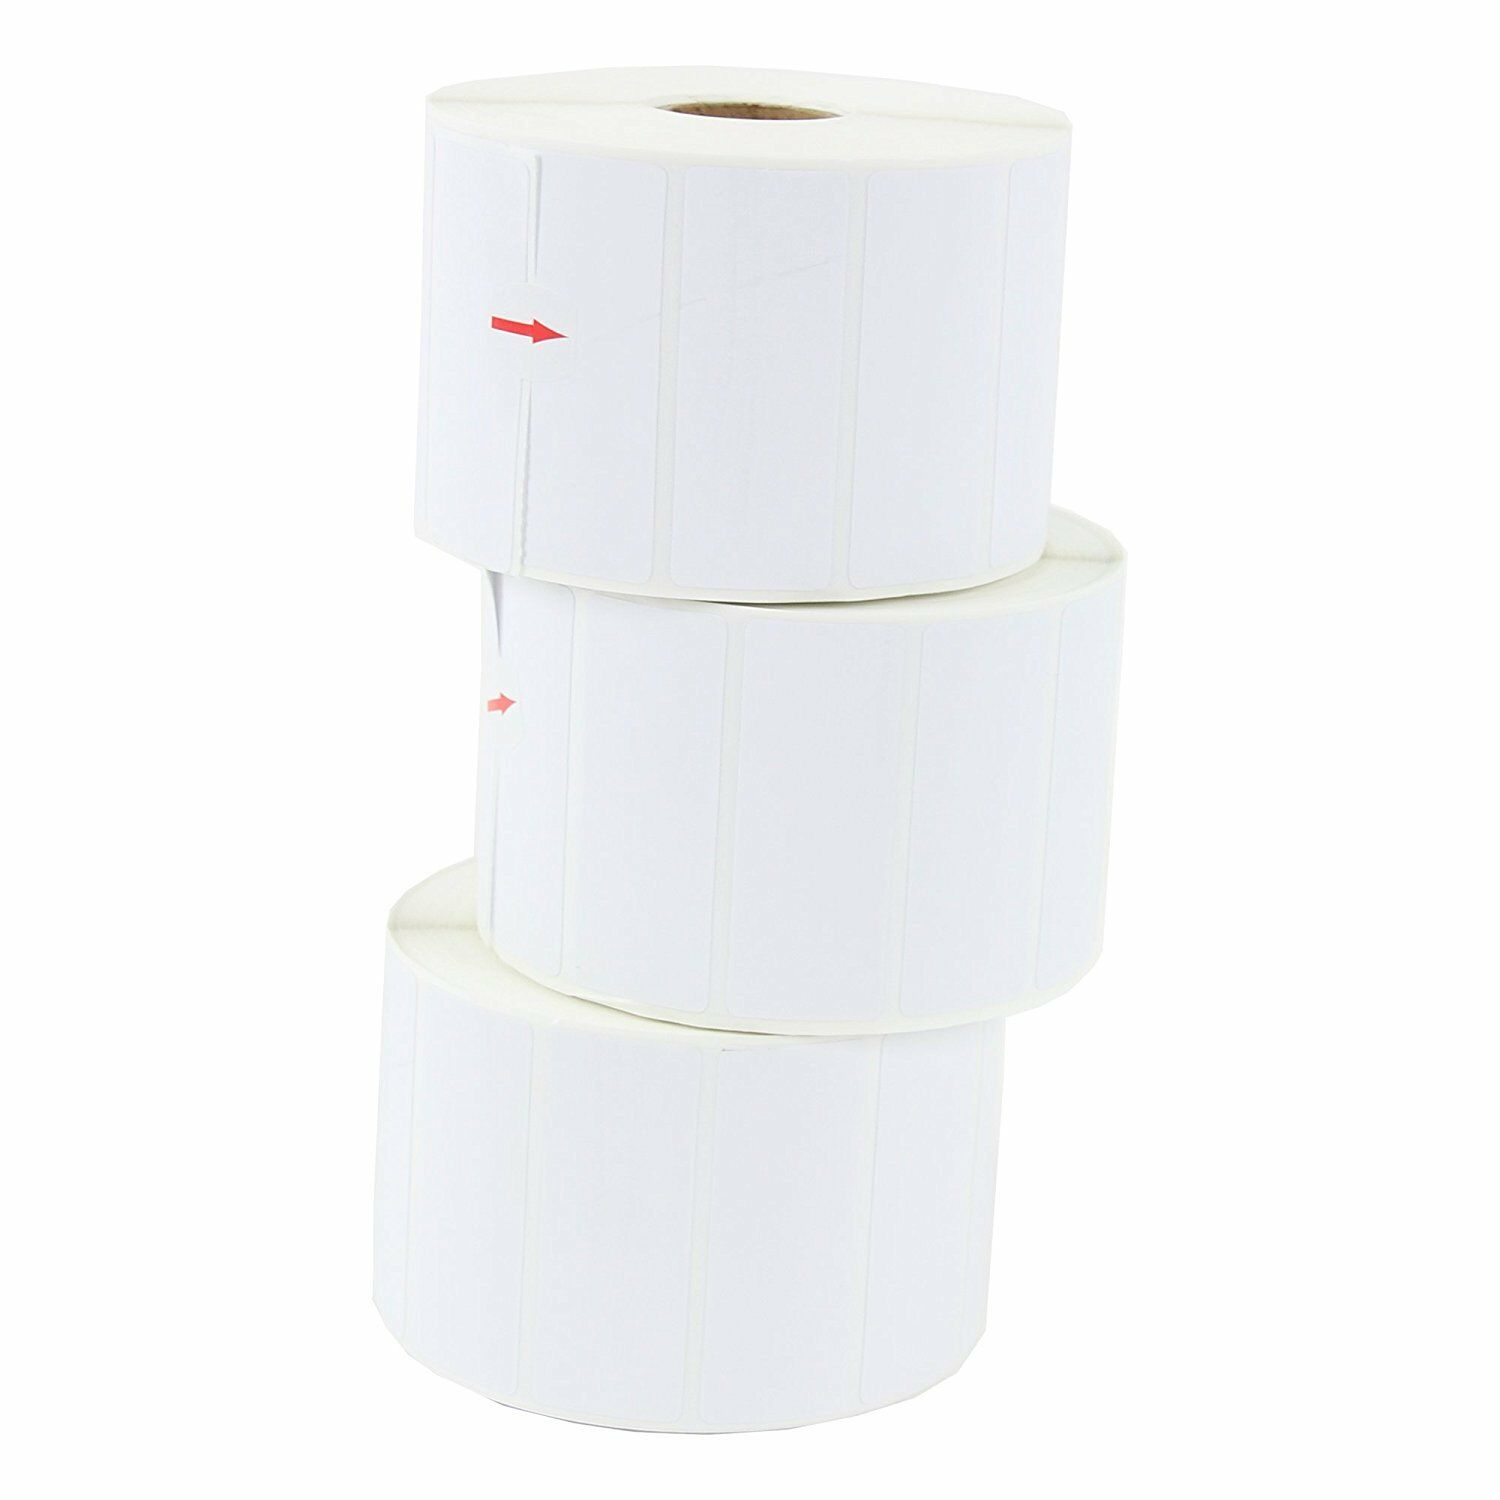 20 Rolls Amazon FBA Direct Thermal Shipping Labels 2.625x1 For Neatoscan & Zebra